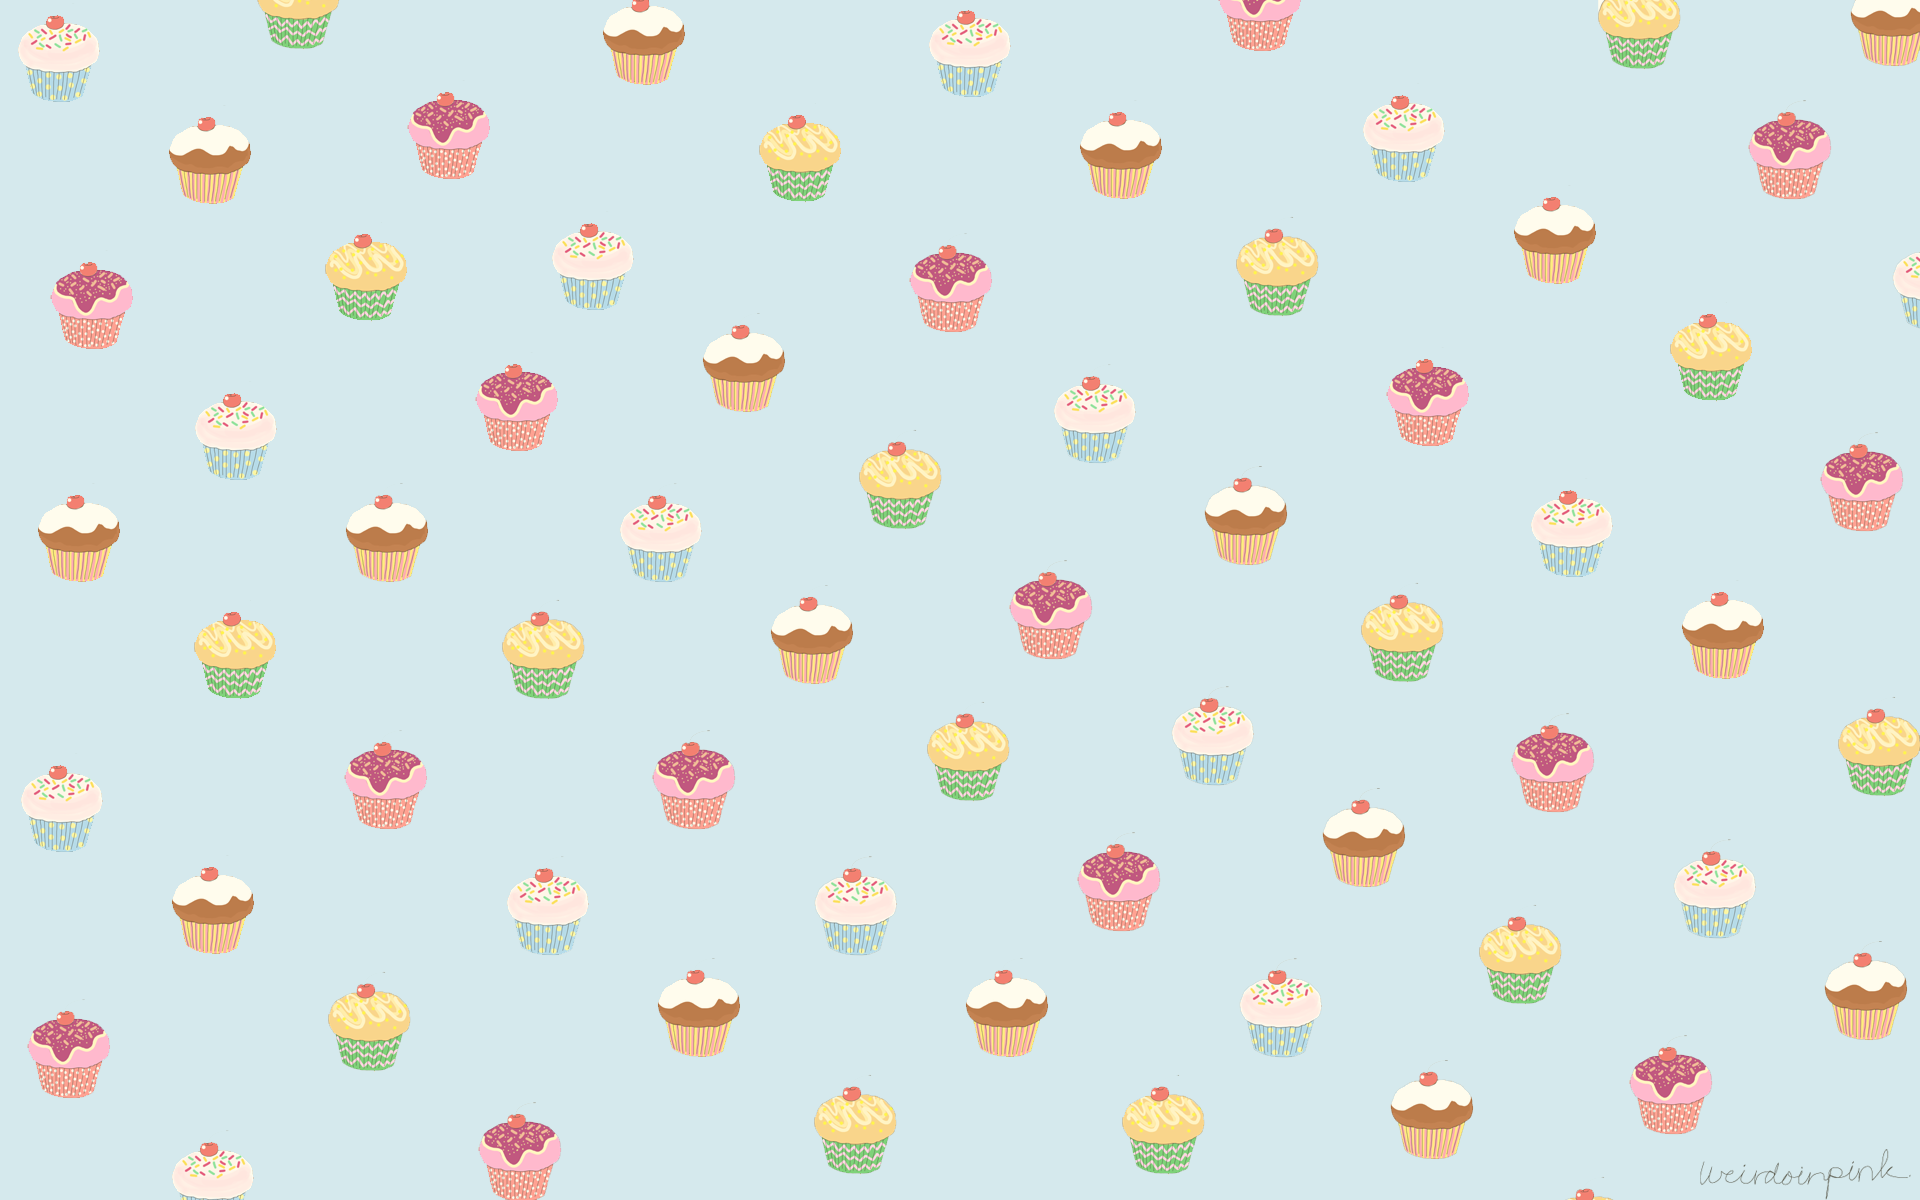 New Cupcake HD Widescreen Wallpapers